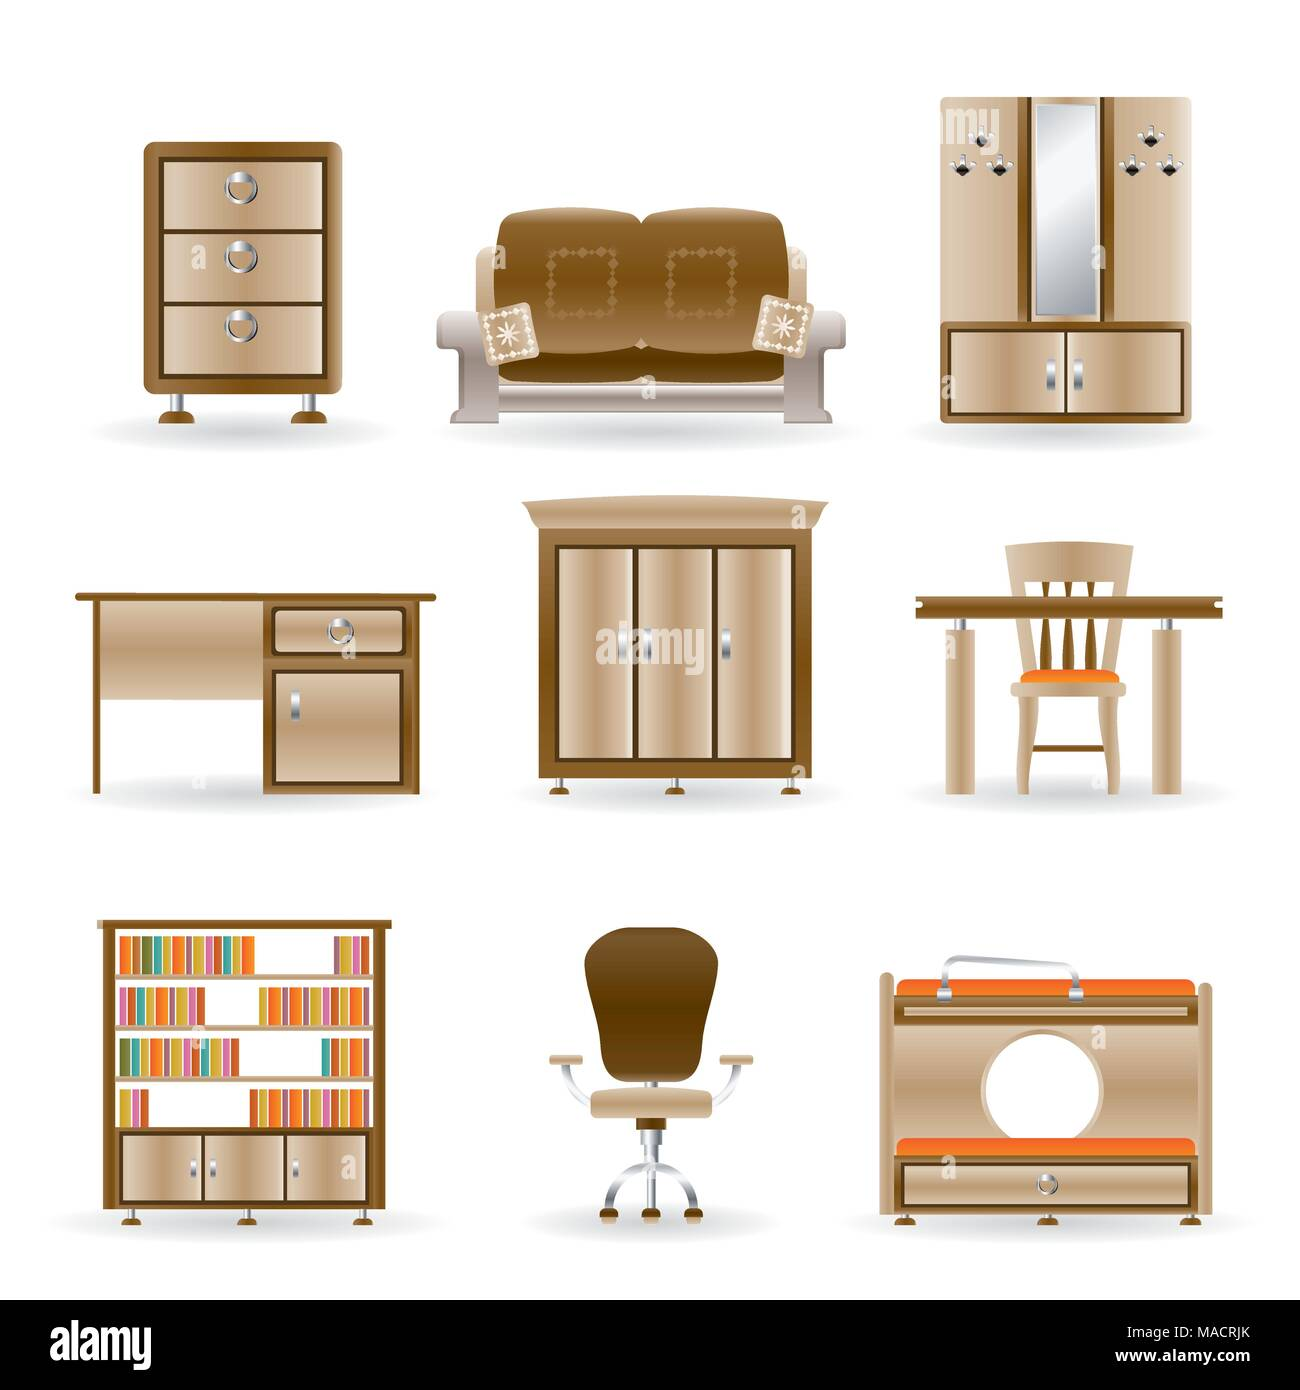 Living Room Tv Stock Vector Images - Alamy